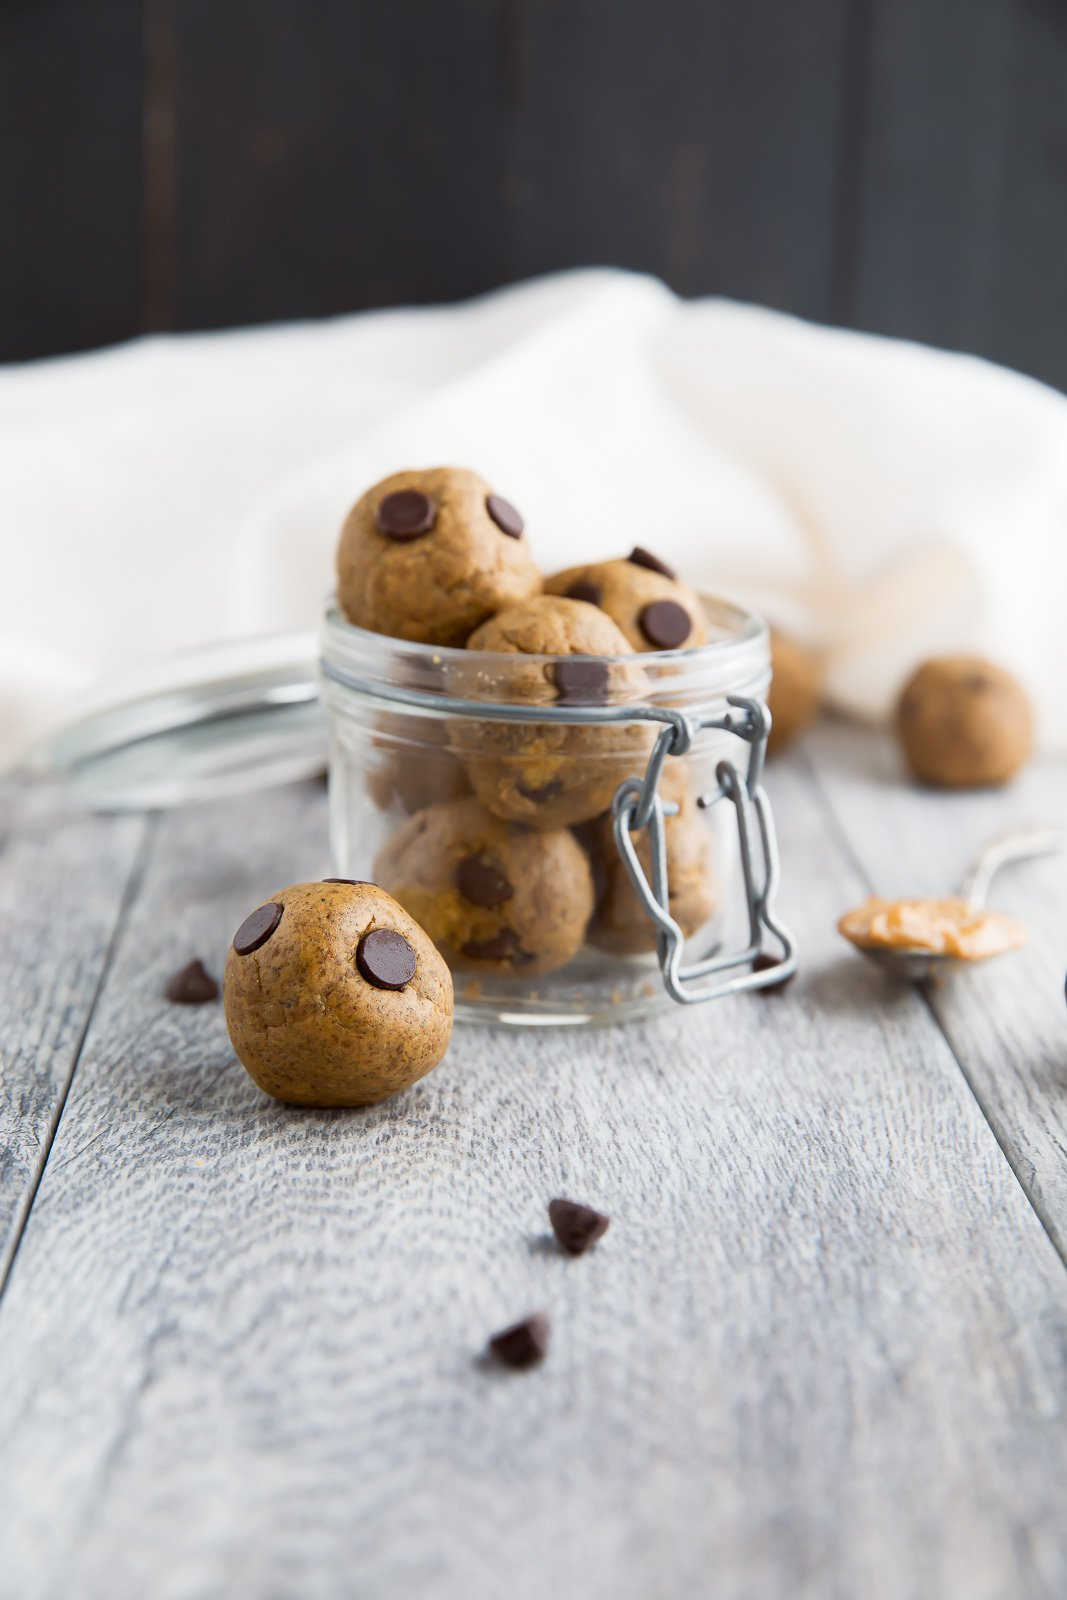 Healthy Protein-packed peanut butter balls that taste like a peanut butter cup cookie dough. No sugar added, grain free, gluten free and over 5g protein per ball! | ambitiouskitchen.com